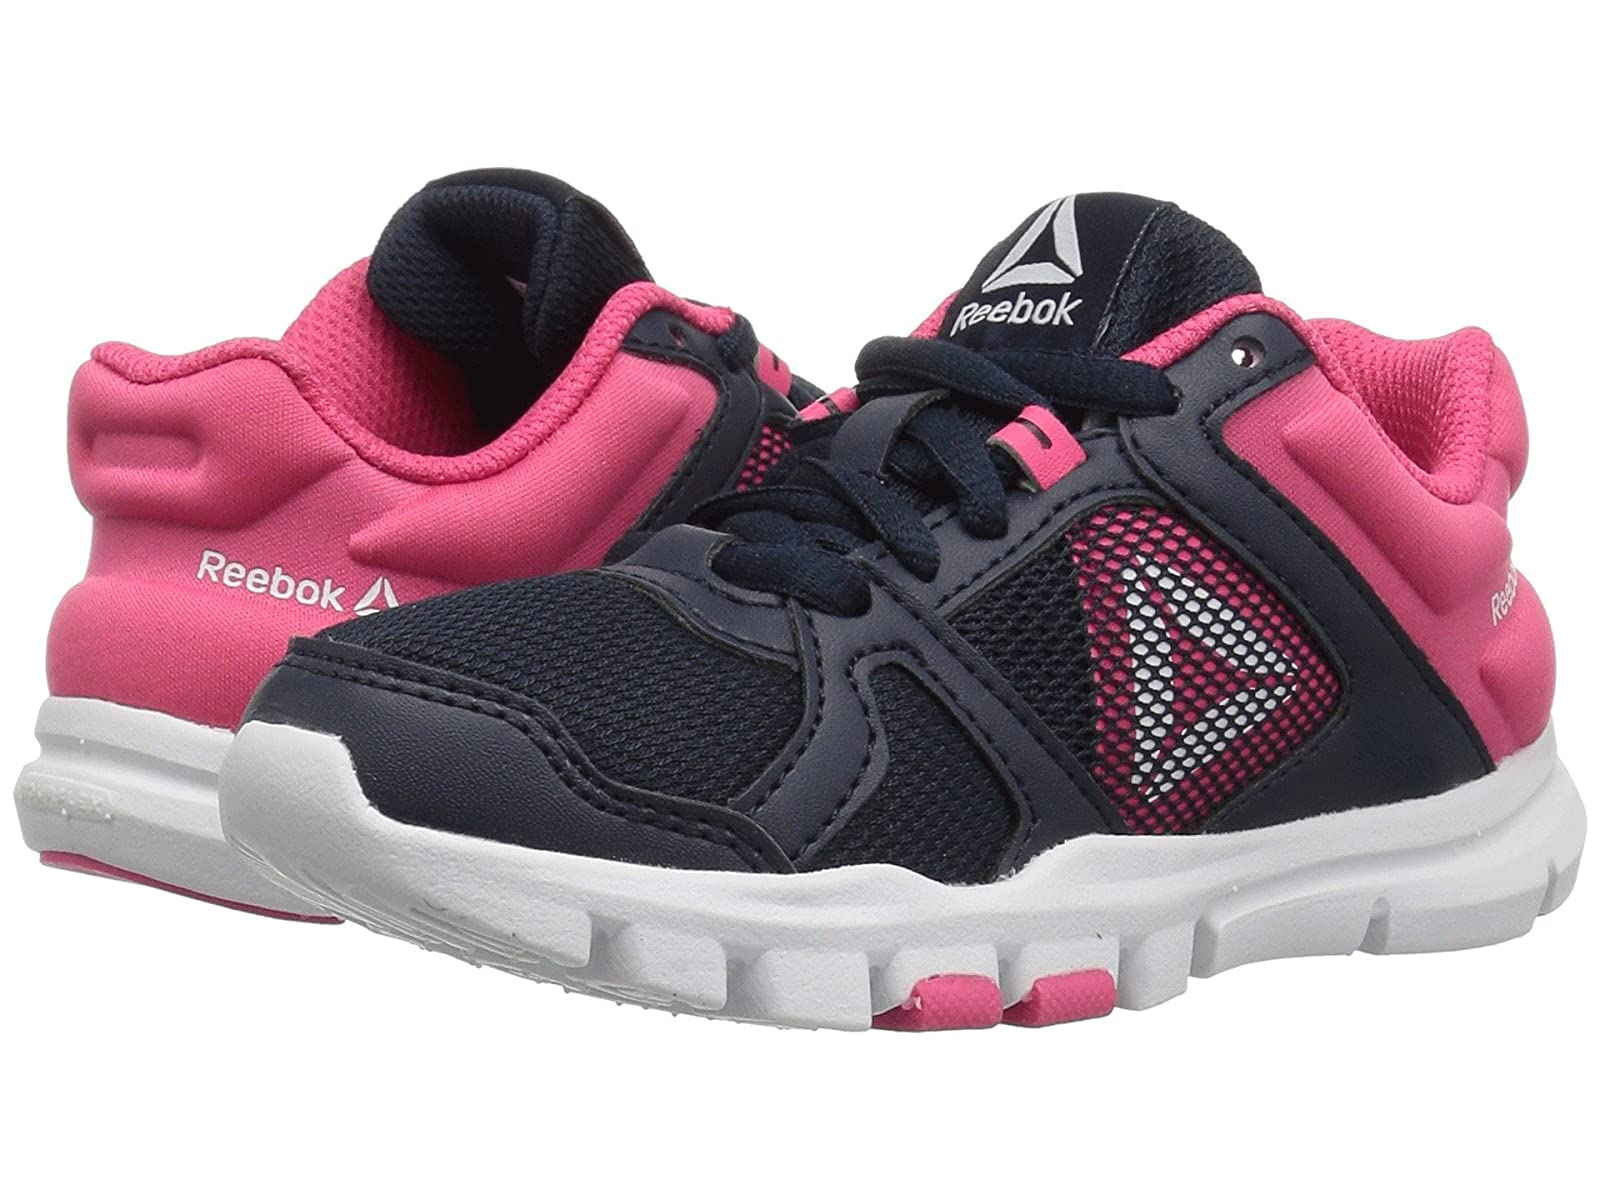 Reebok Train Kids Yourflex Train Reebok 10 (Little Kid/Big Kid) 09f18f